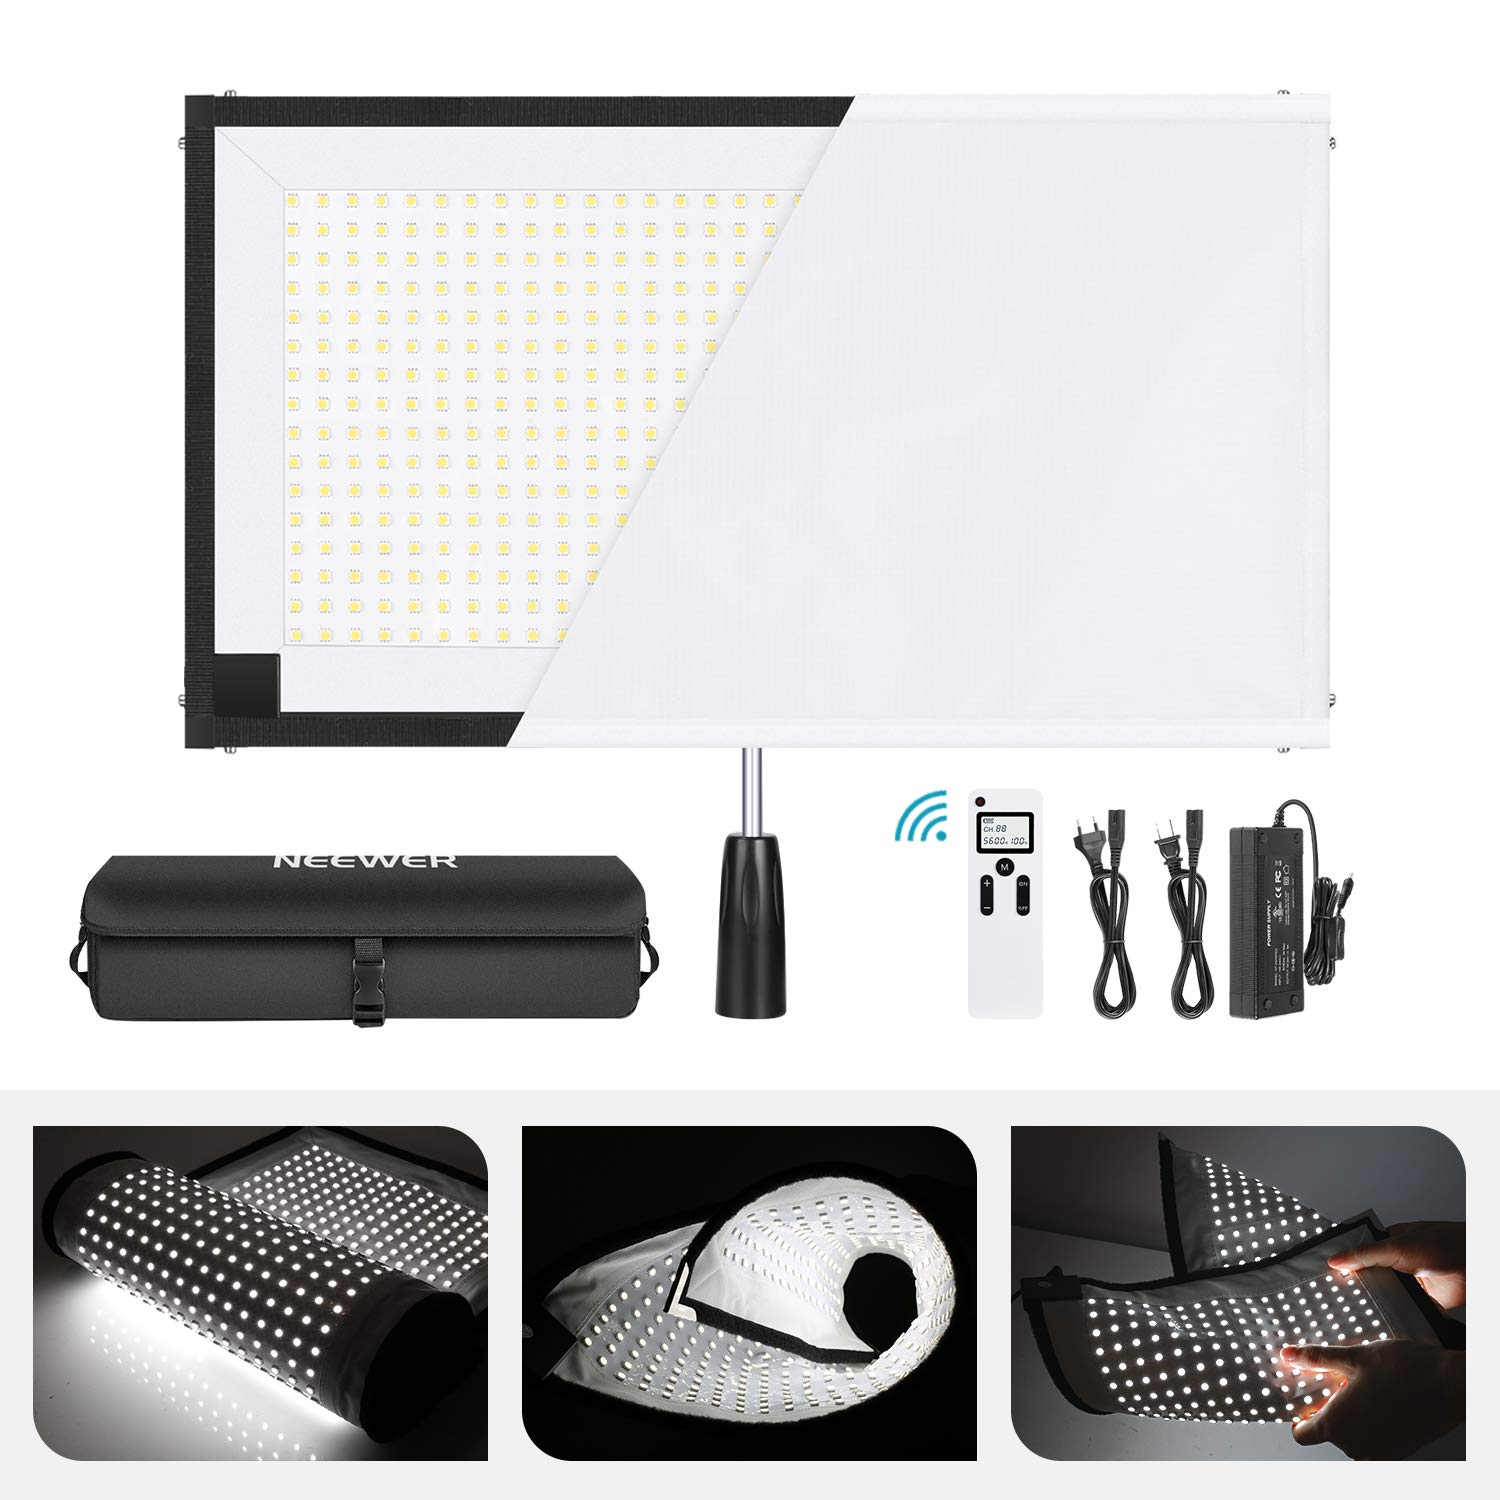 Neewer Rollable 30x53cm Flexible LED Light Panel Mat on Fabric 48W 5600K 512 LED Lighting Panel with Handle Grip, Remote Control, Diffuser Cloth, Carry Bag for Traveling Filmmakers Outdoor Photography